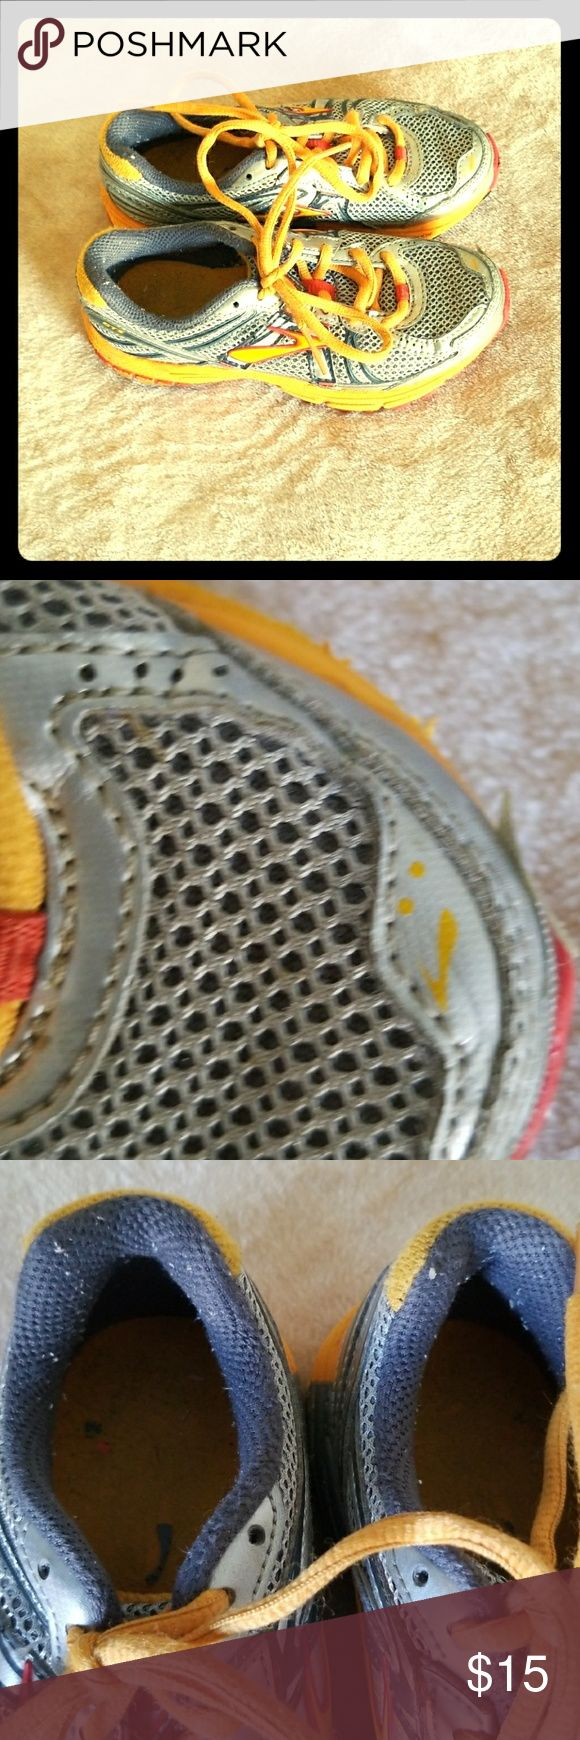 Brooks Tennis shoes Girls tennis shoes with some wear and tear but with life left in them! Make a great playtime shoe!! Brooks Shoes Sneakers